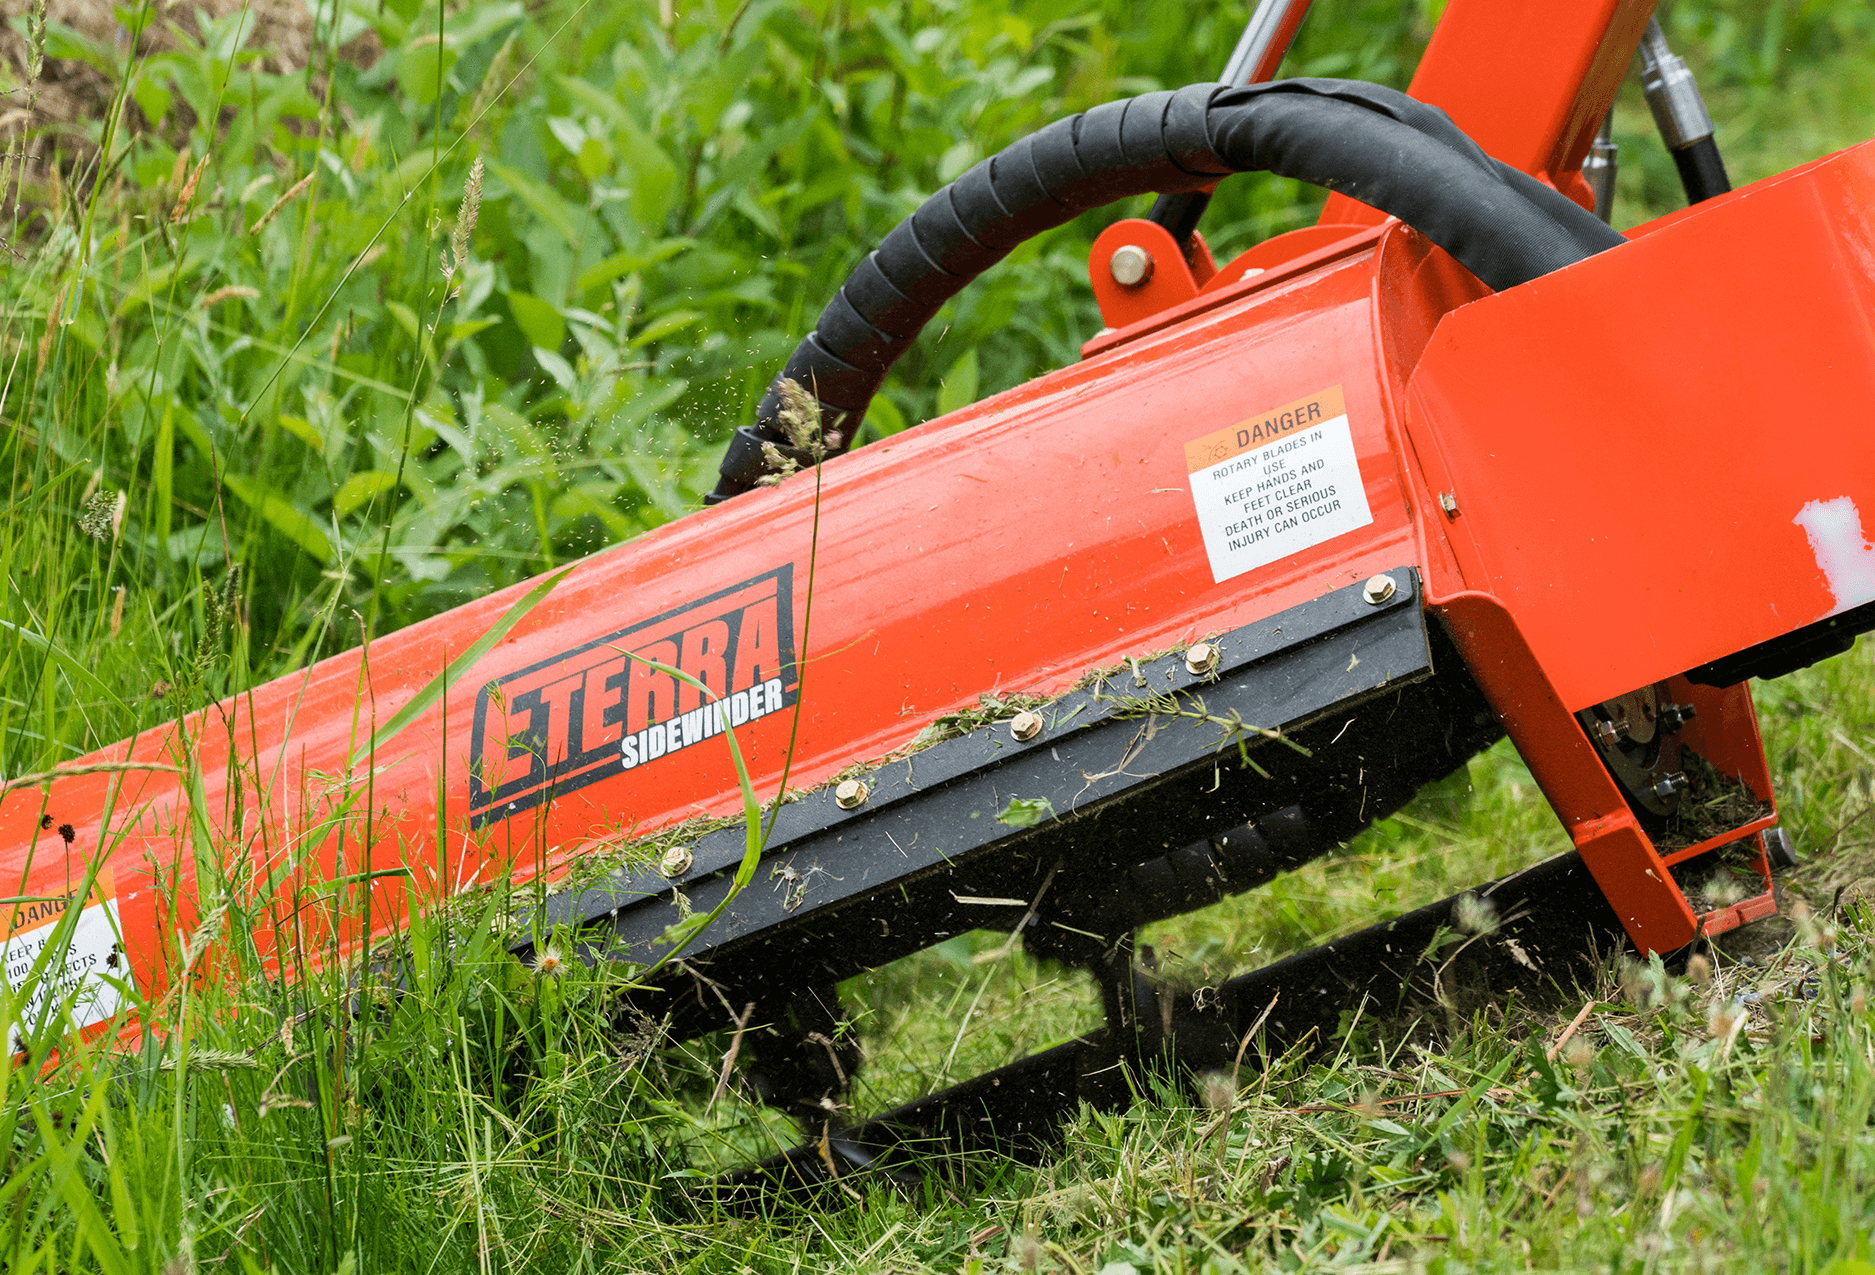 Eterra Sidewinder Mini Skid Steer flail mower close up